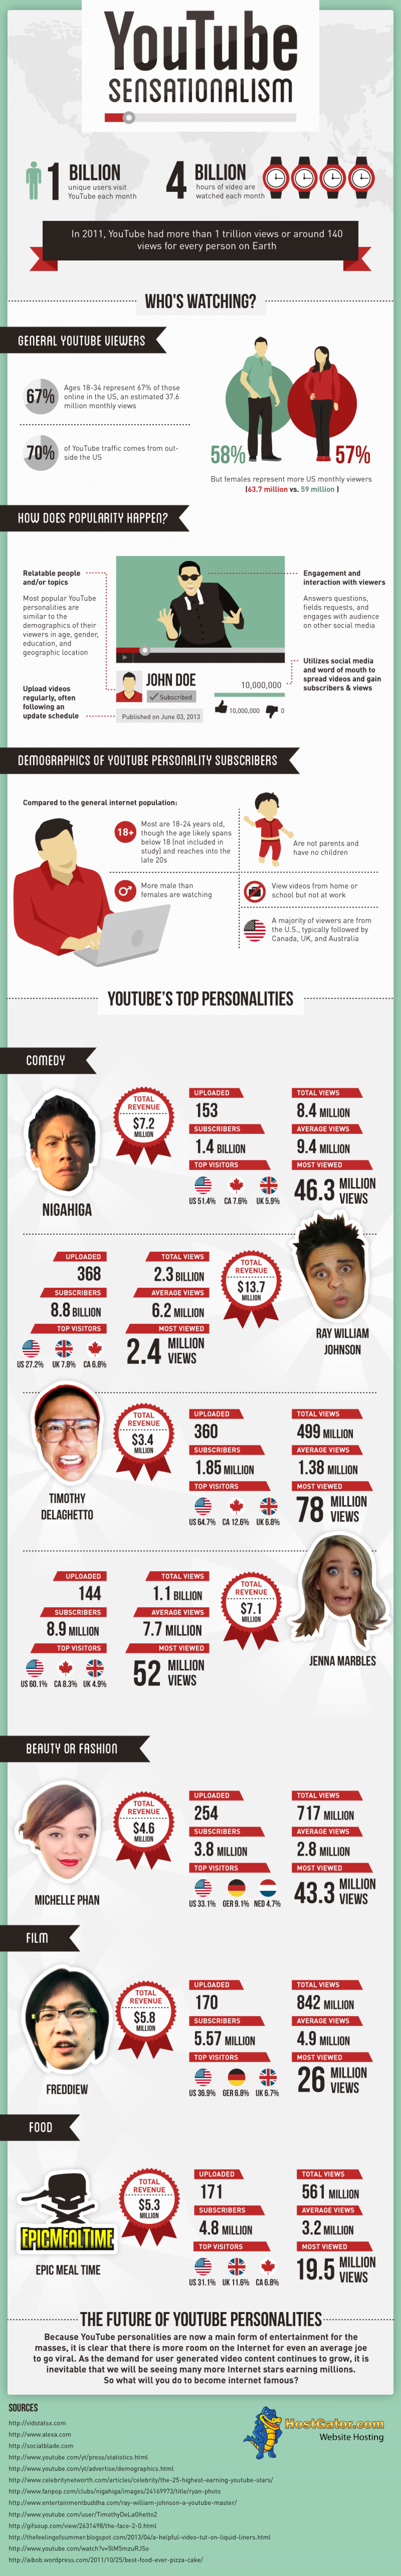 YouTube Sensationlism Infographic